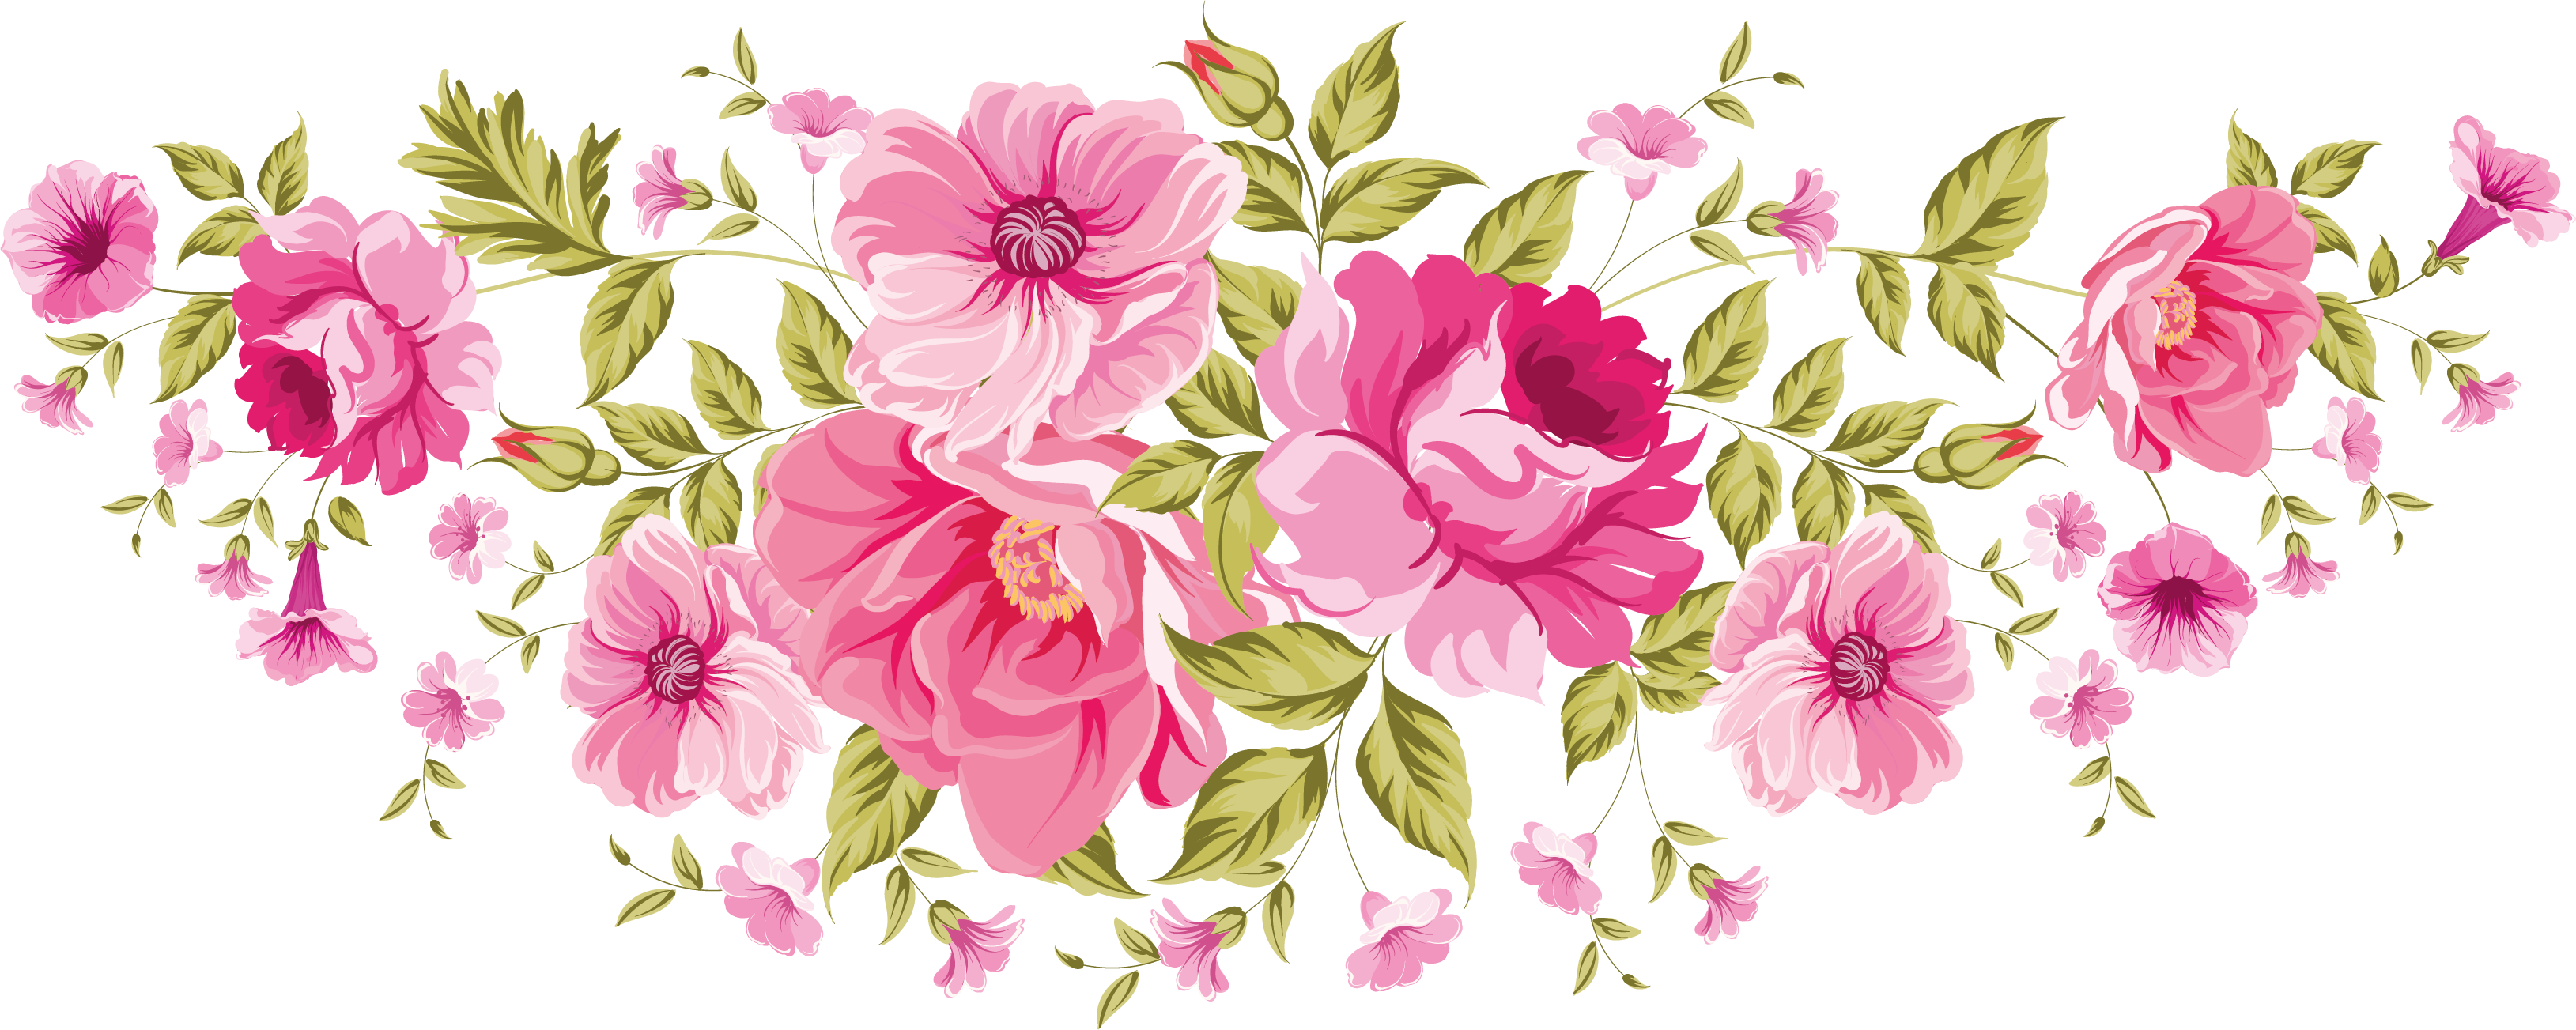 Flowers xxl decoupage pinterest. Floral png svg royalty free